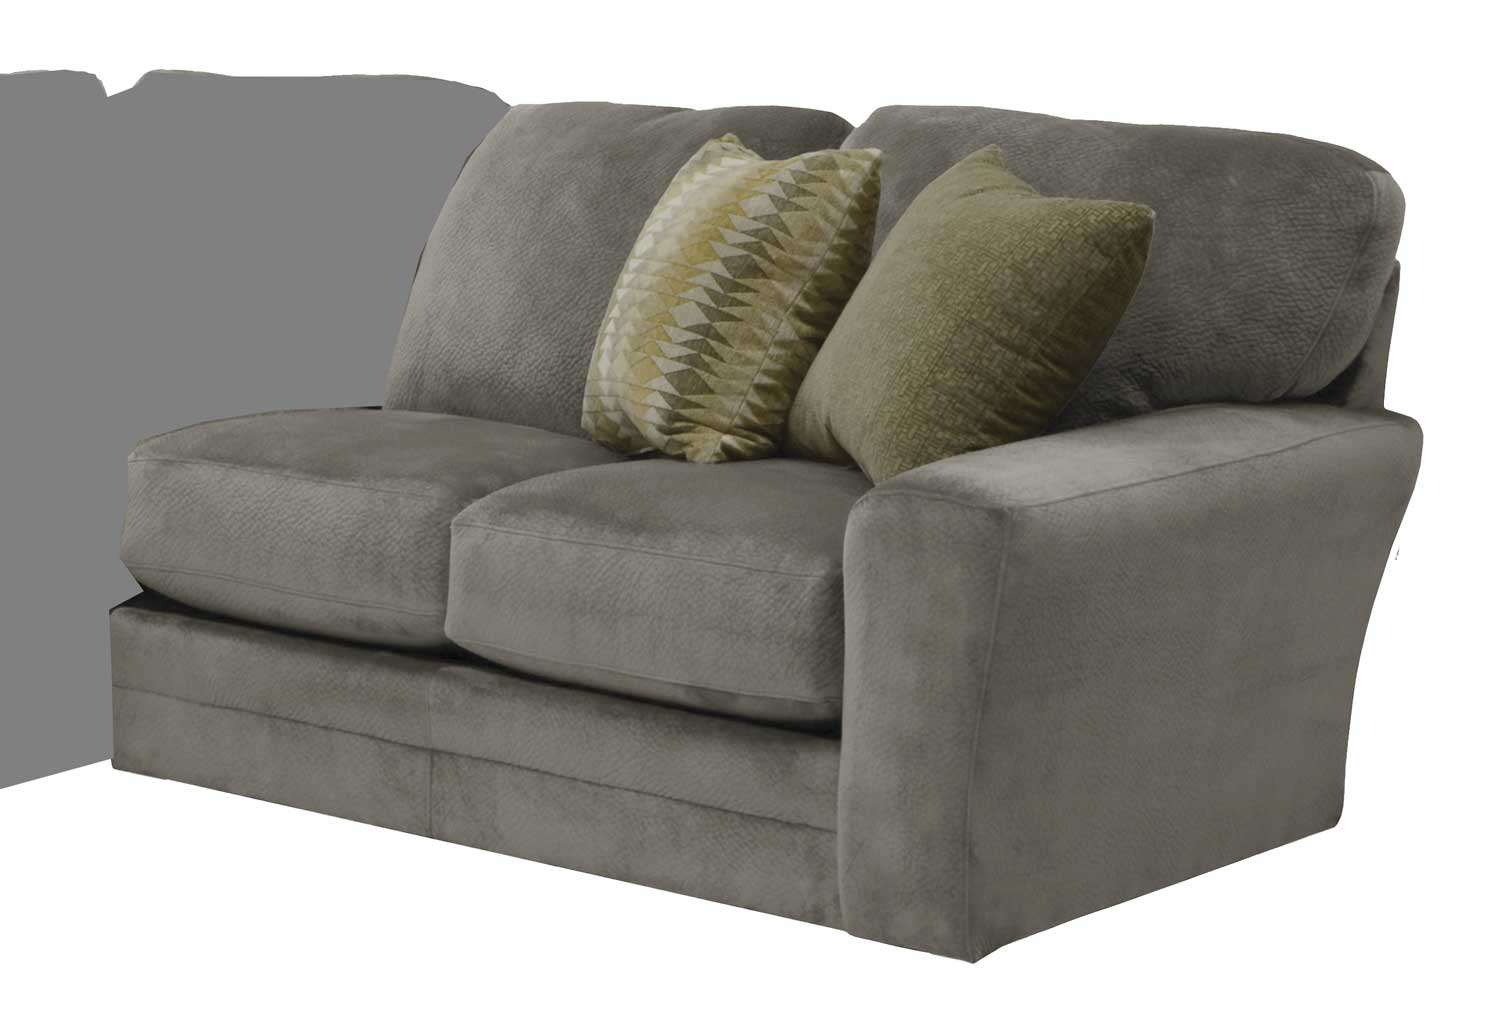 Catnapper Sectional Everest Jackson Furniture Everest Modular Sectional Sofa In Ivory Zoom